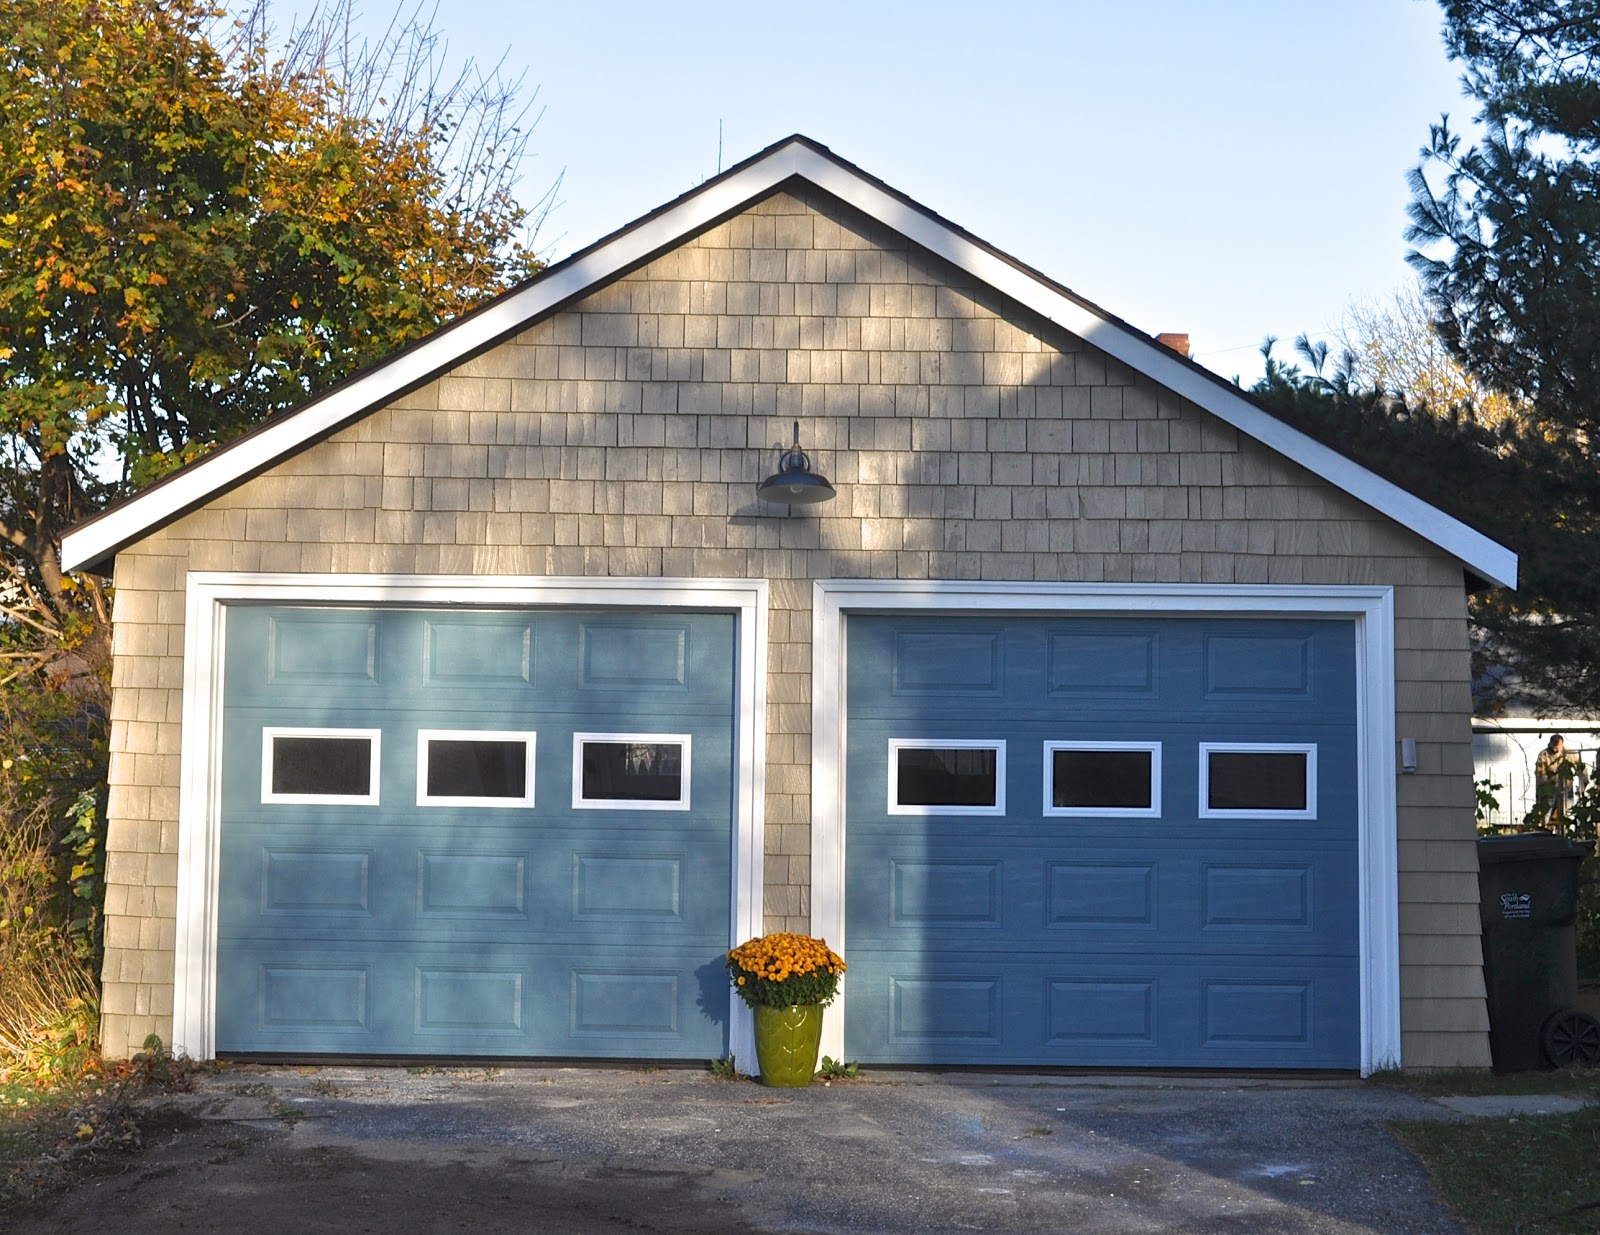 Sopo cottage open house dec 2 11 3 pm for 2 5 car garage cost